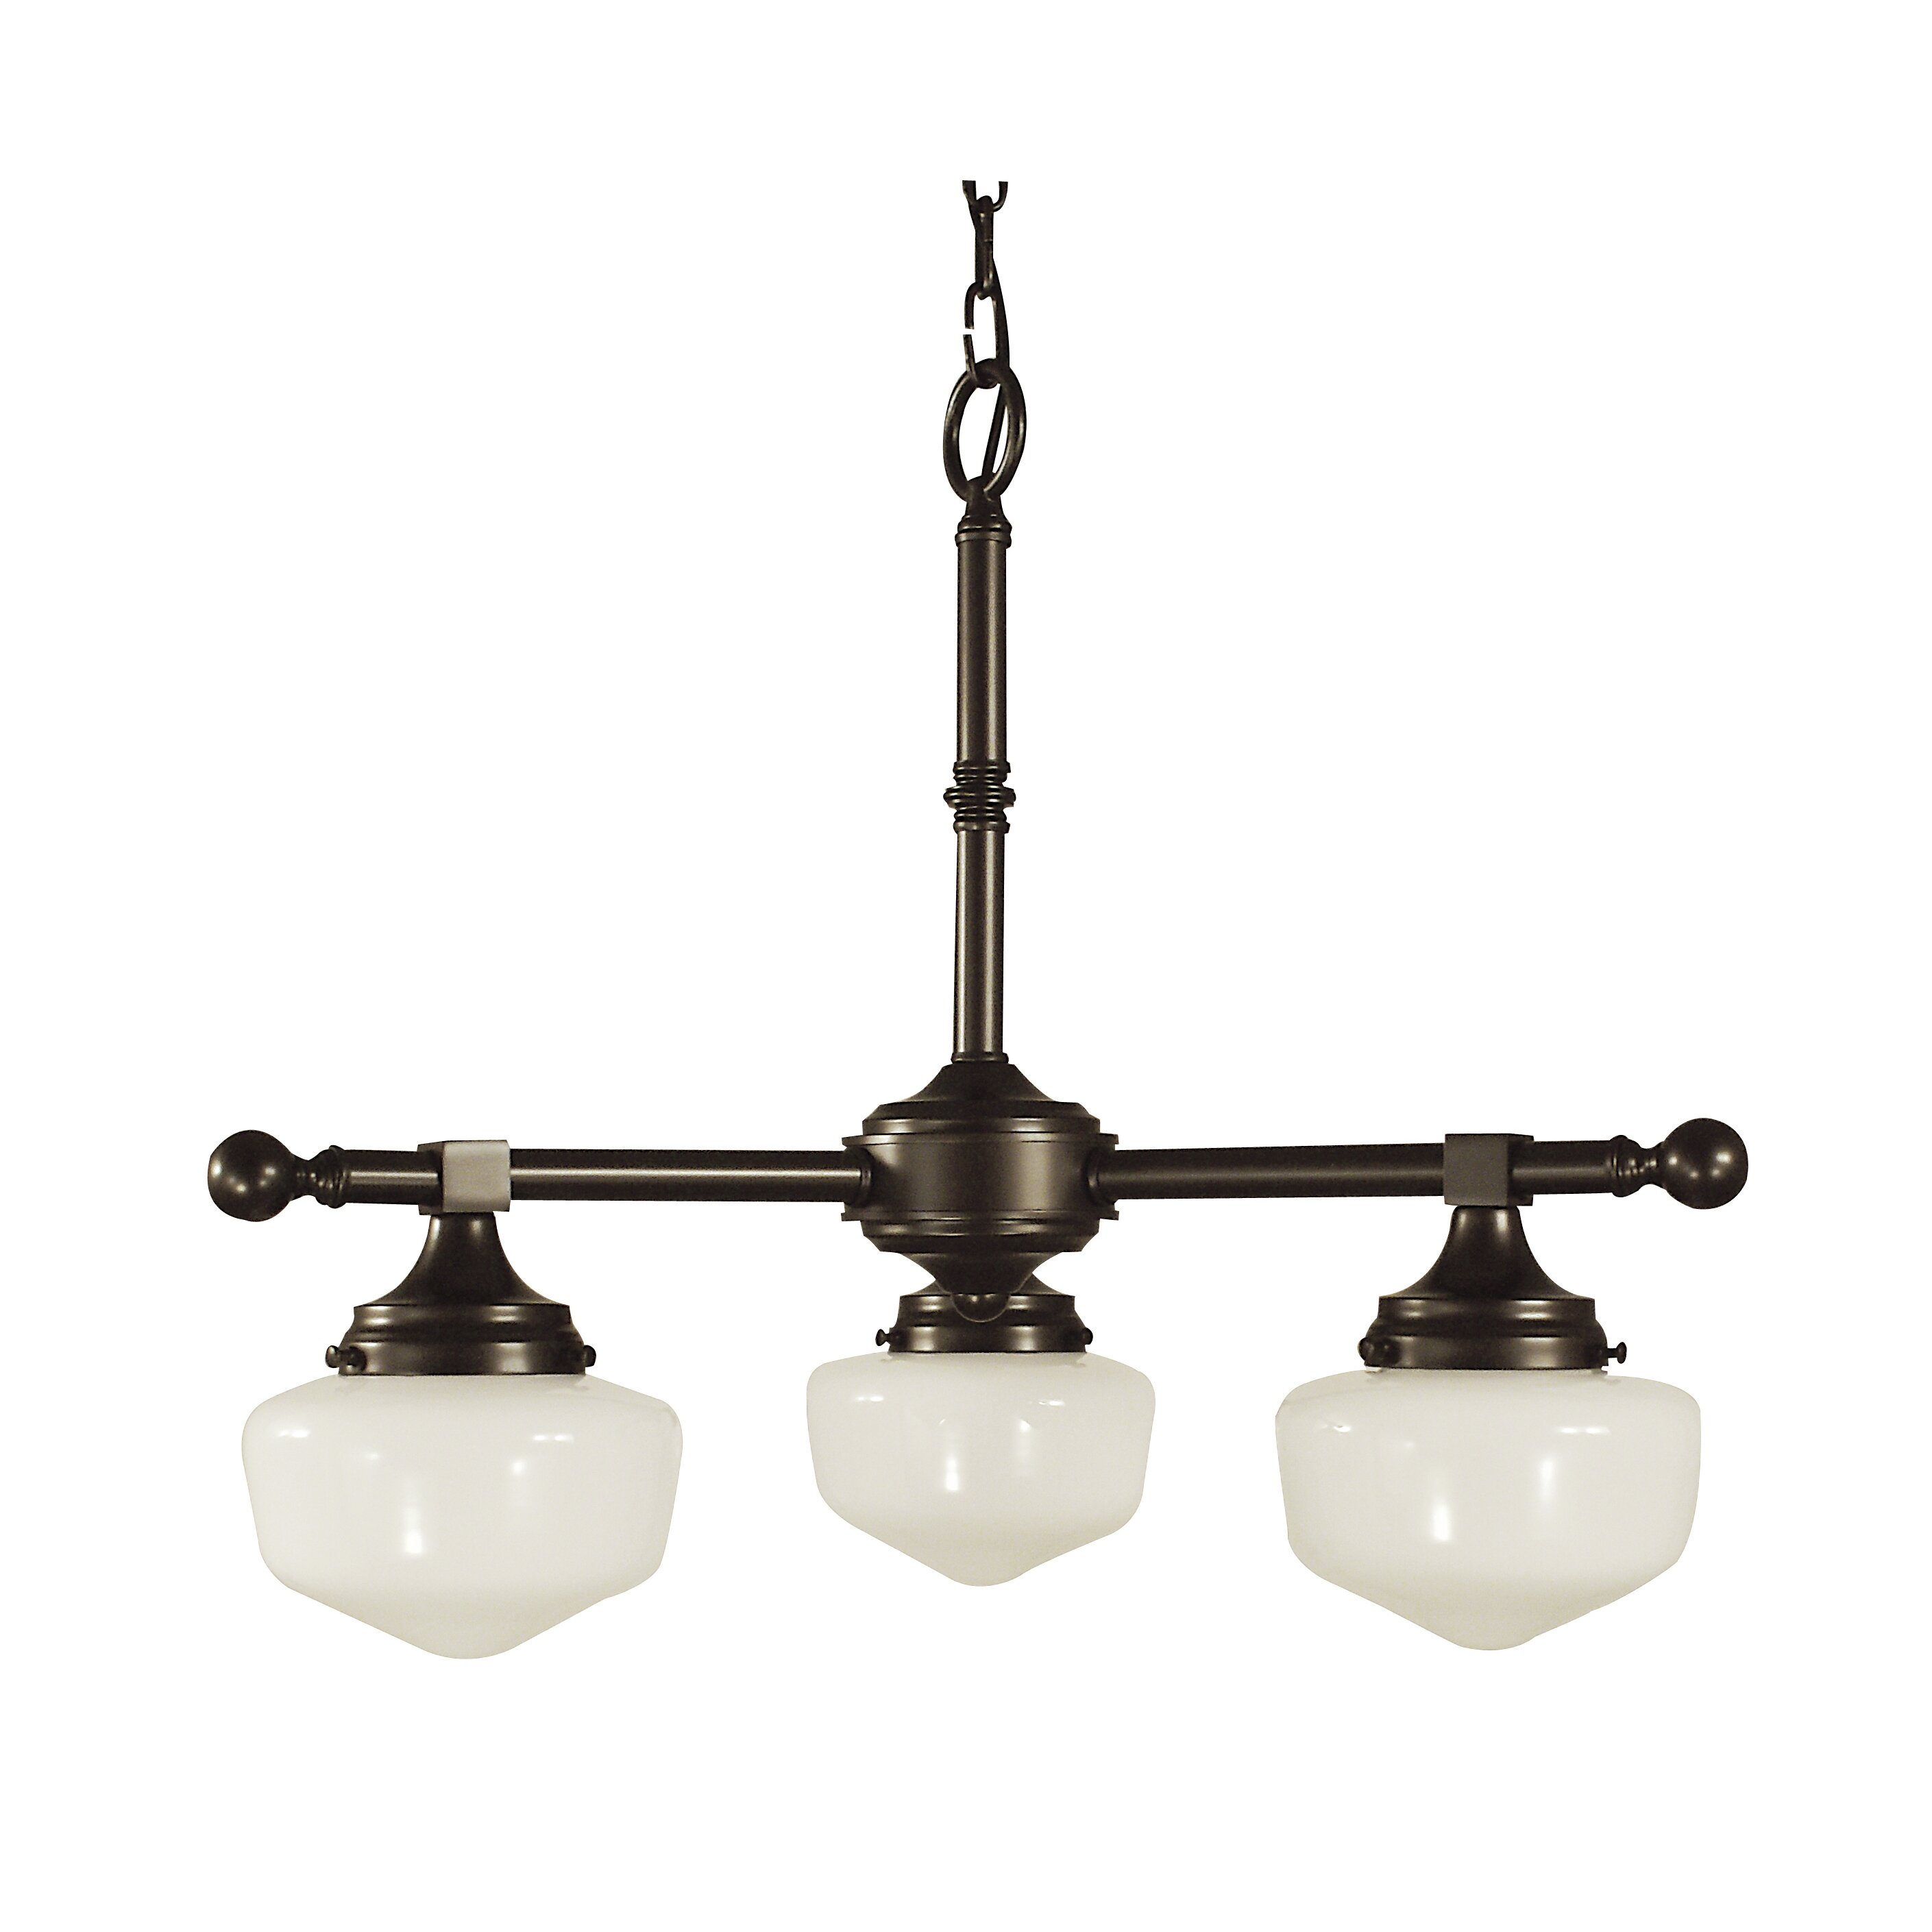 Framburg taylor 3 light kitchen island pendant reviews for Kitchen island lighting pendants